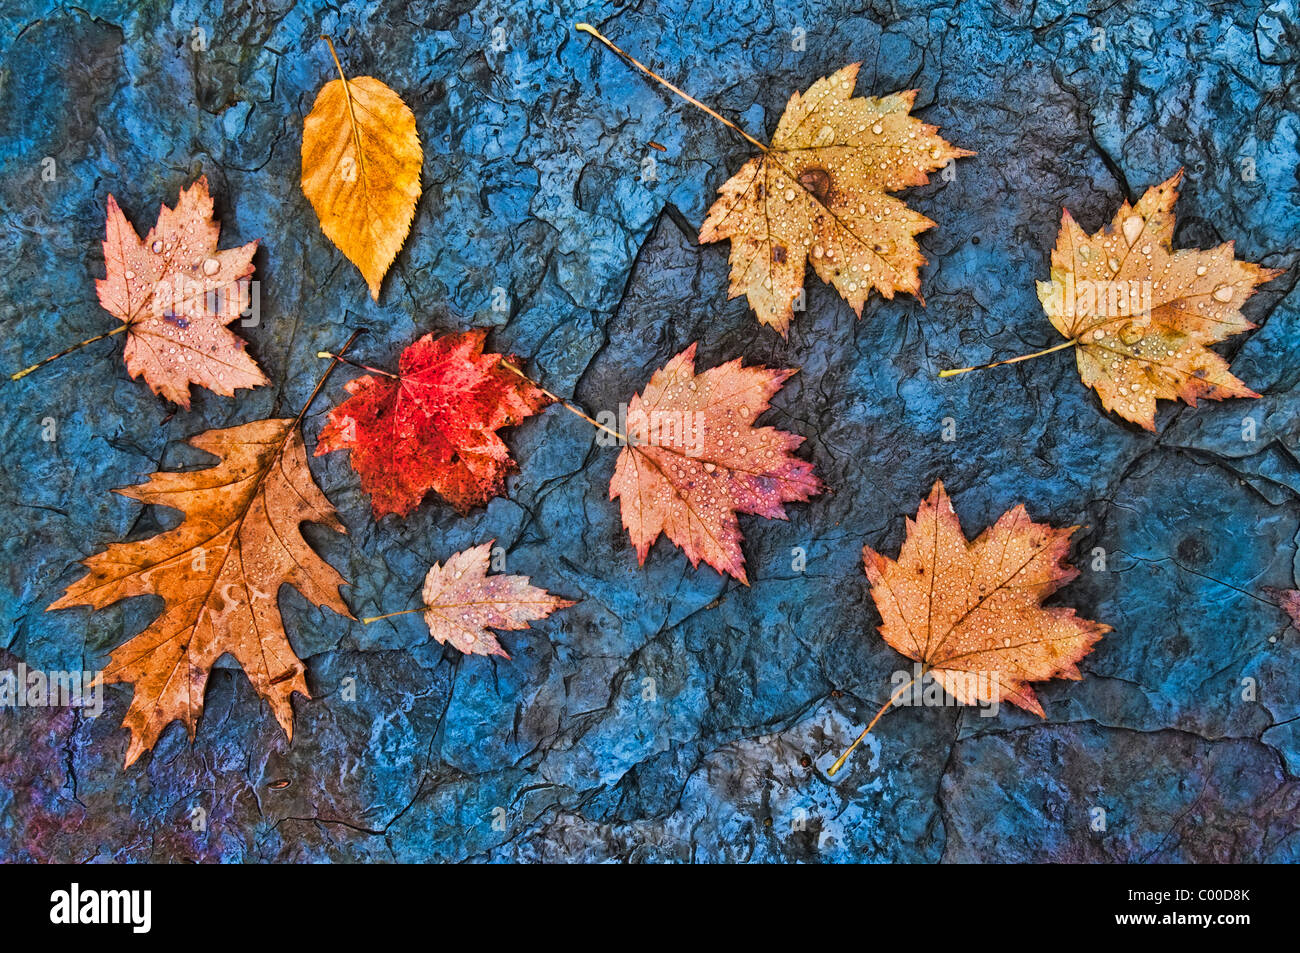 Rain drop covered fall leaves in a slate rock creek bed, Blue Hen Falls, Ohio - Stock Image